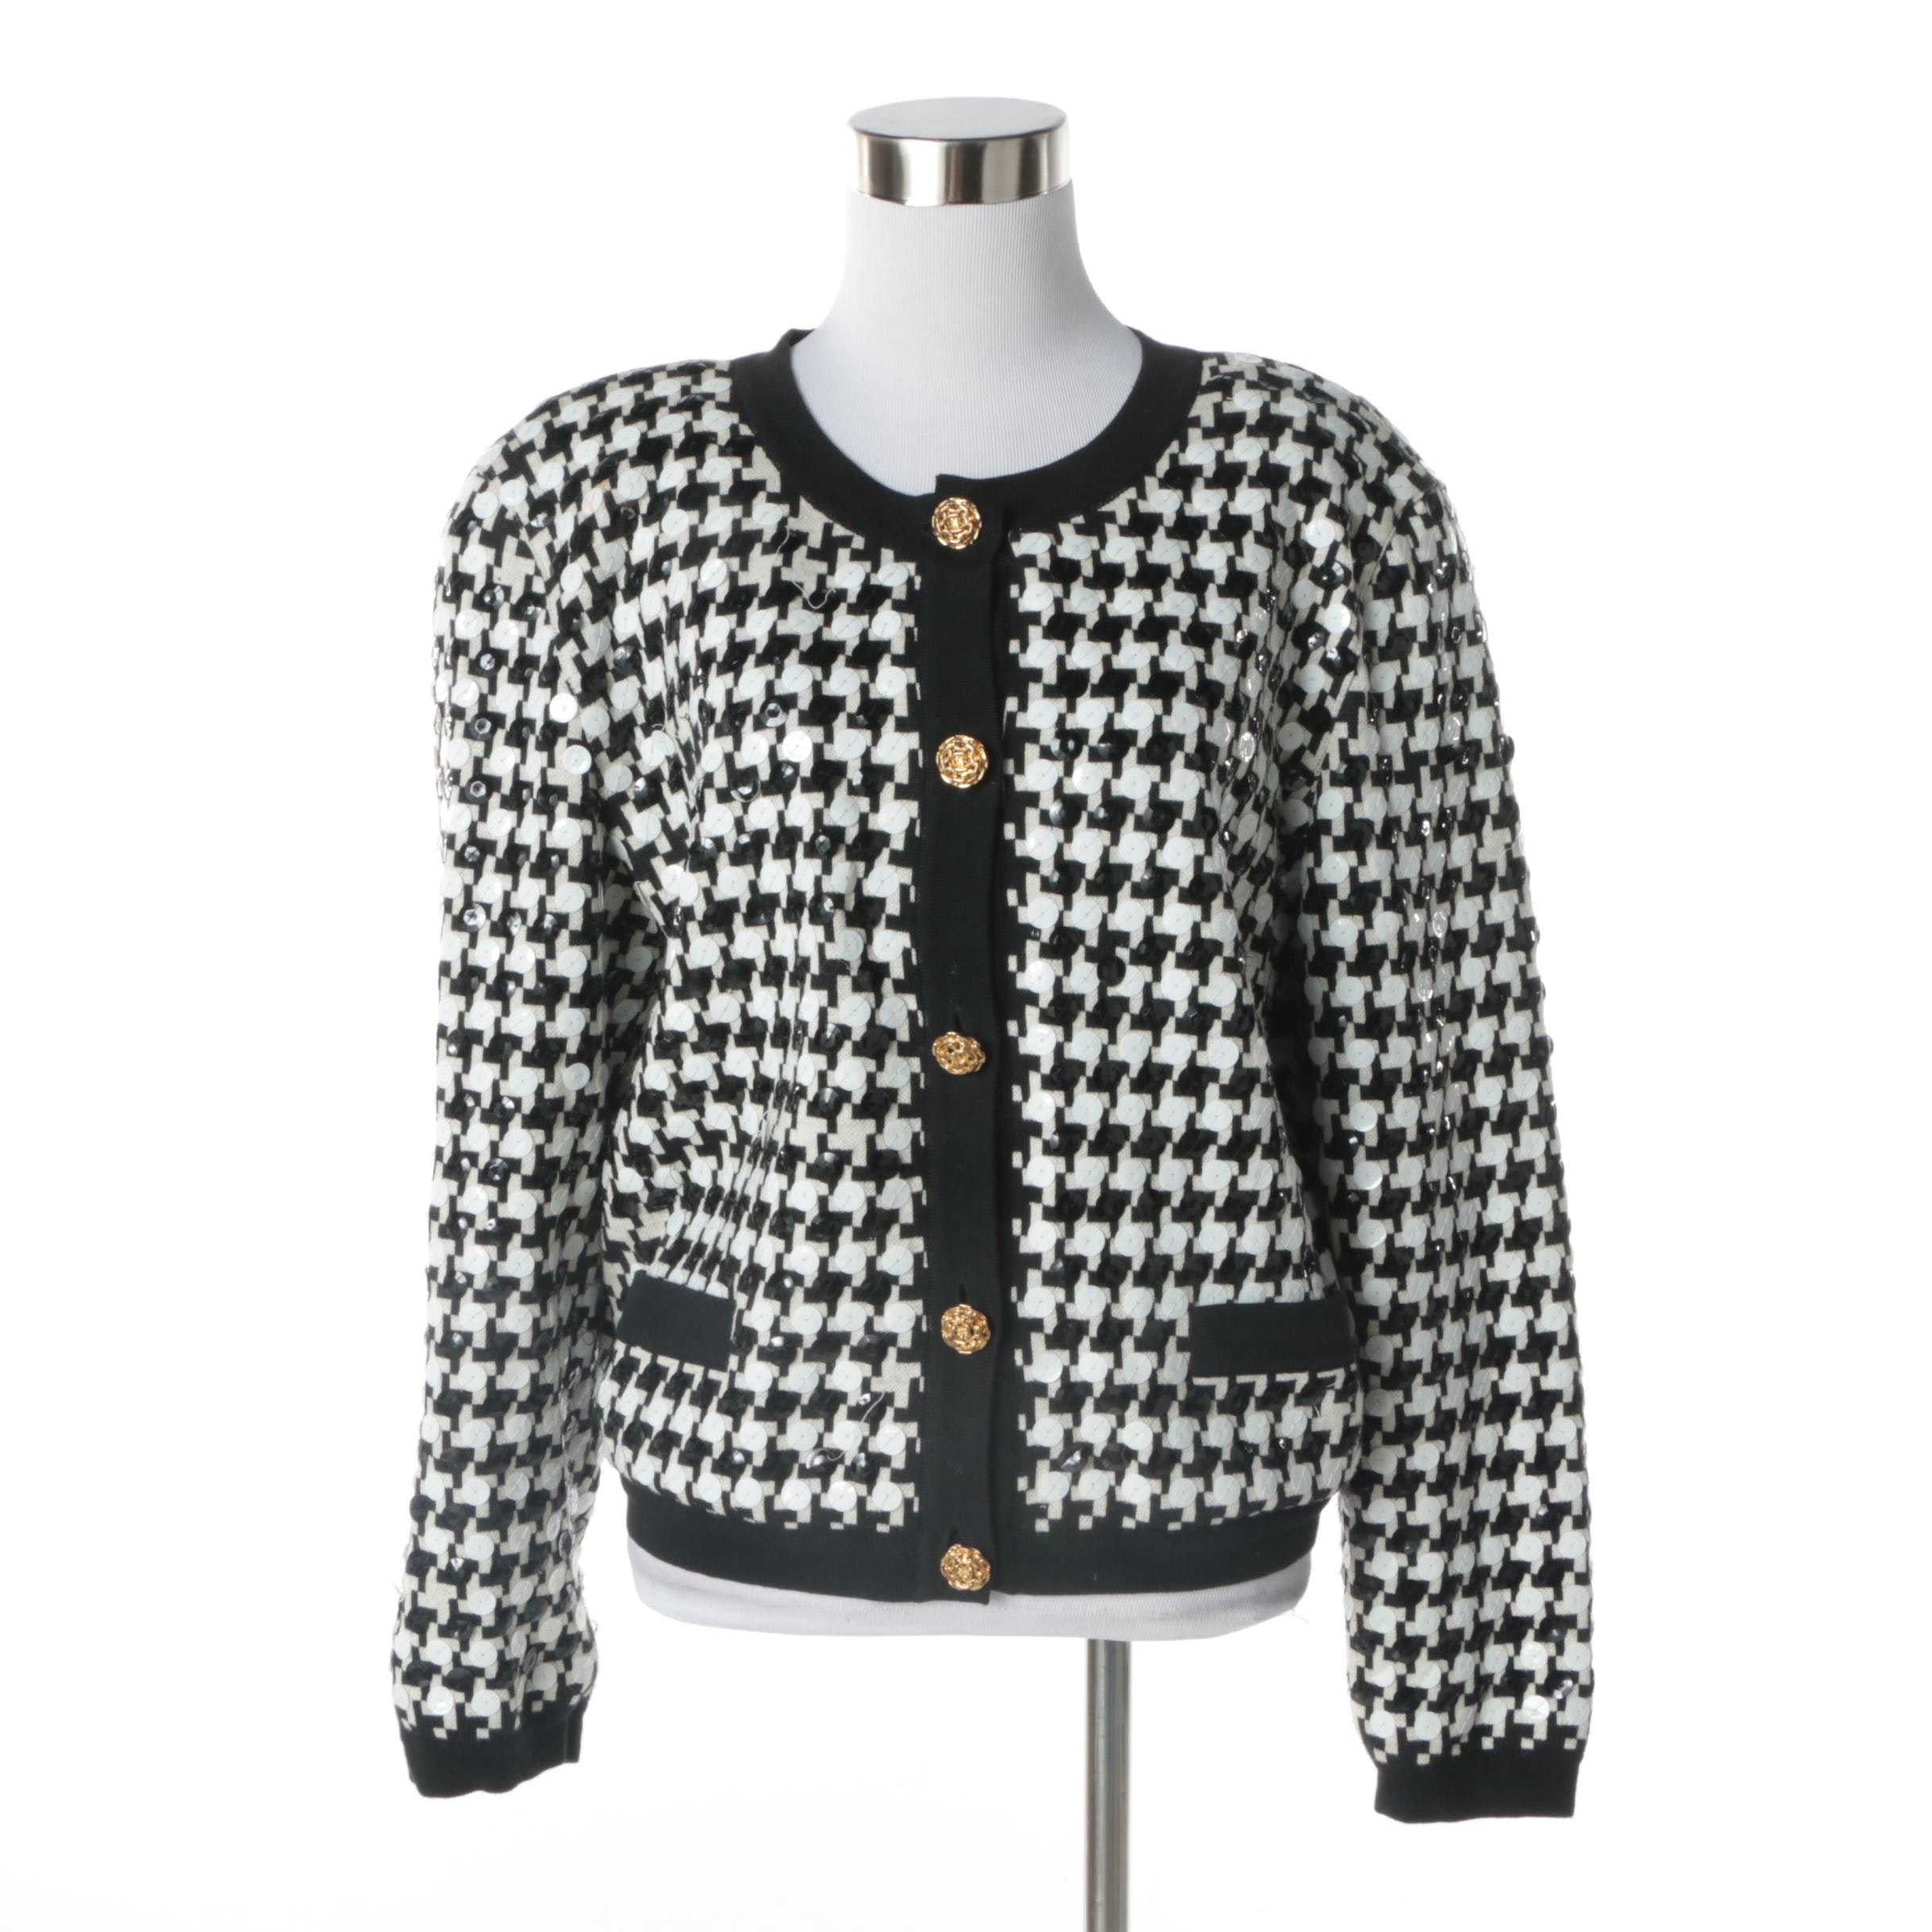 Adrienne Vittadini Black and White Houndstooth Jacket with Sequin Accents